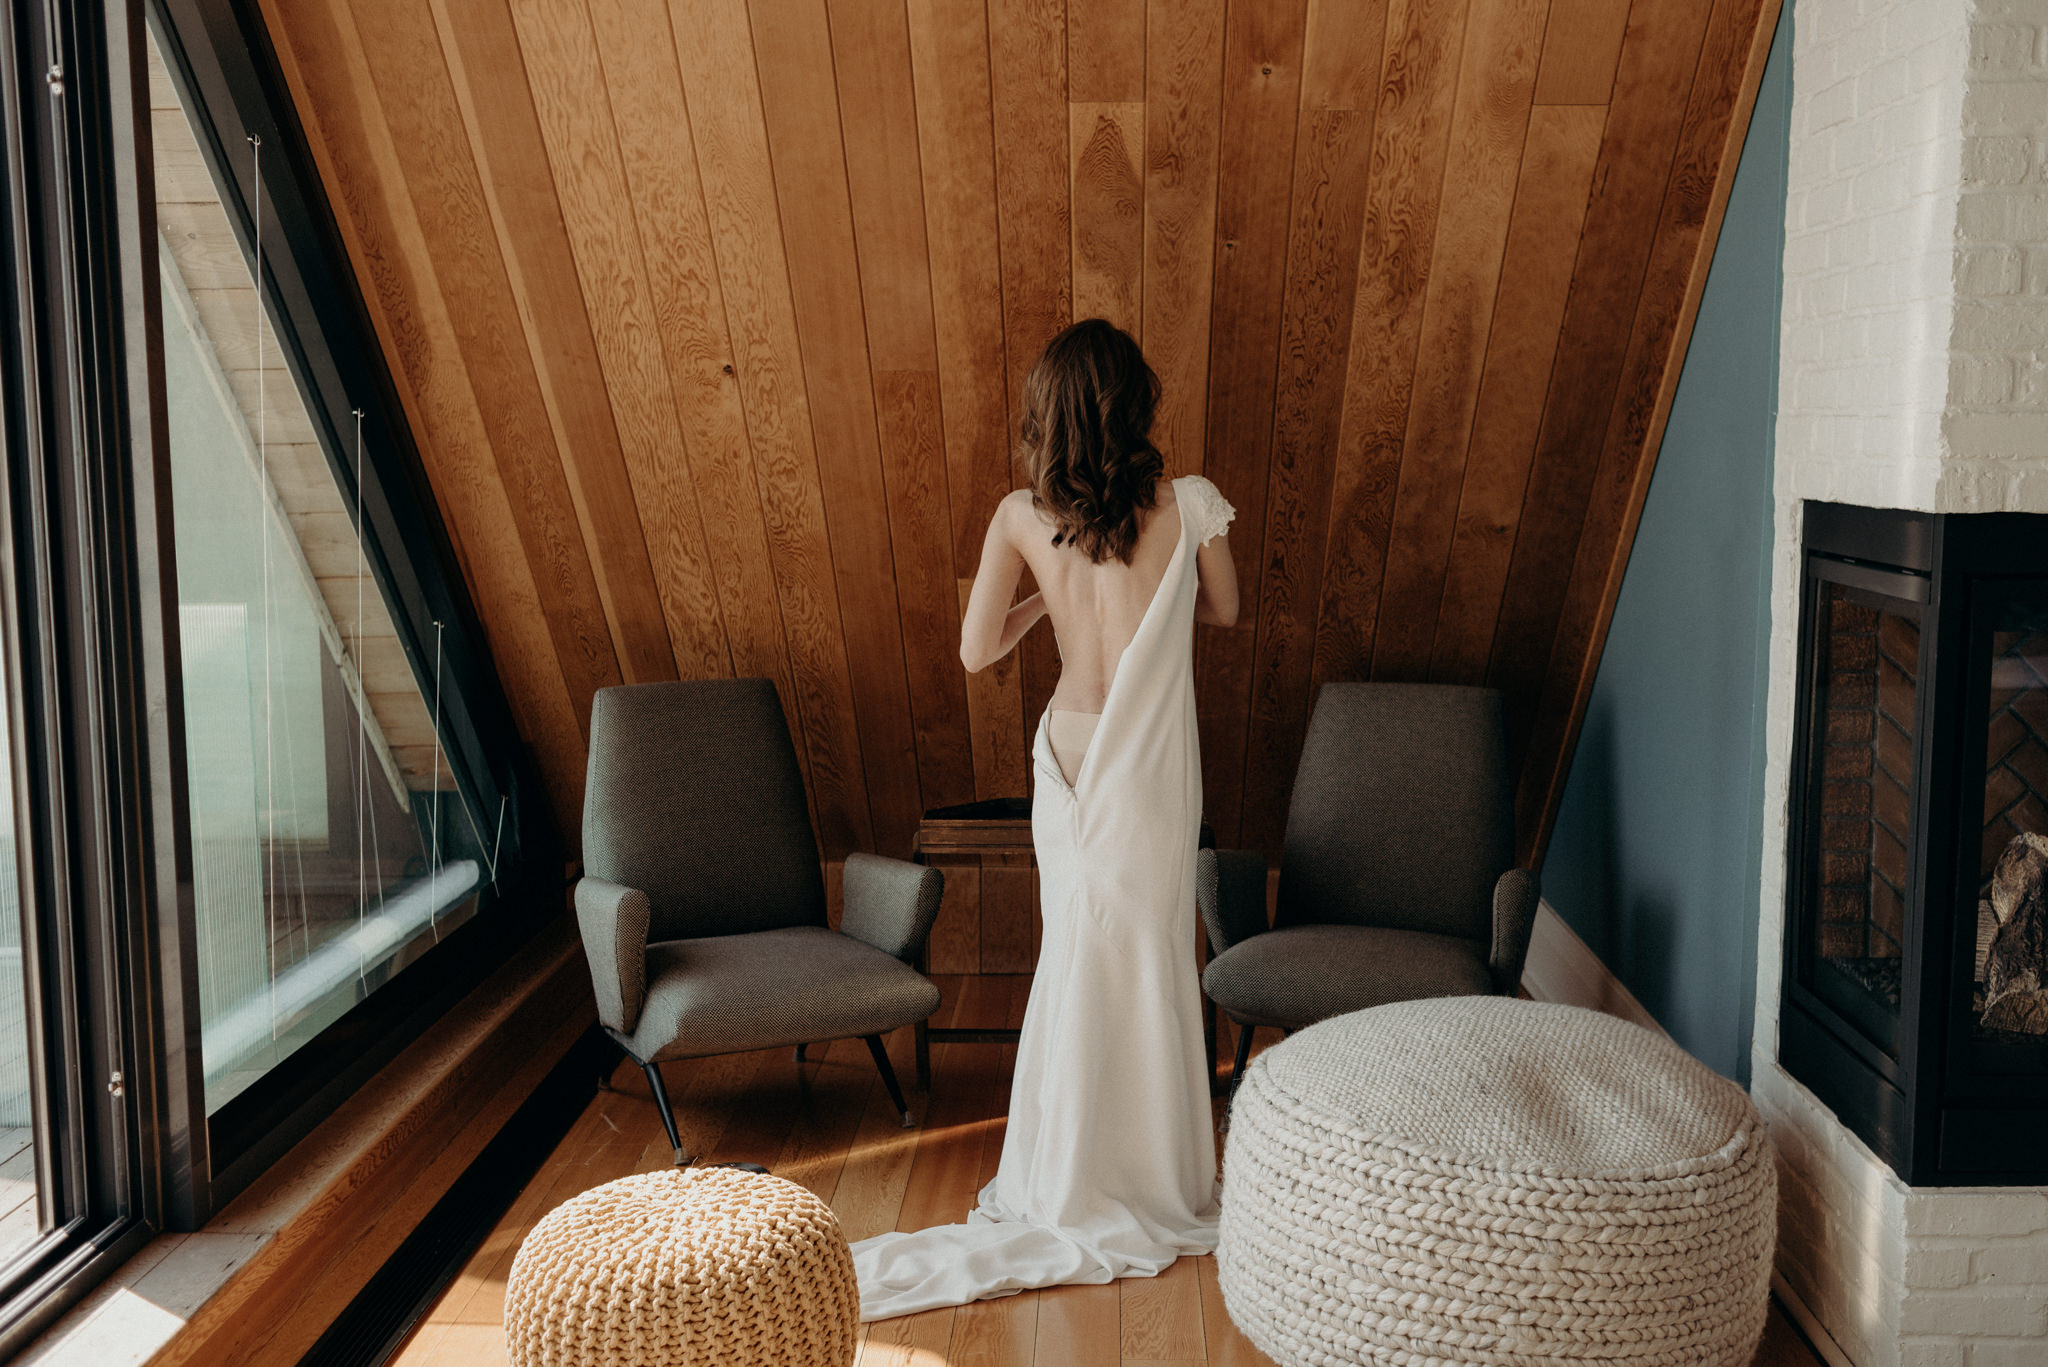 bride getting into dress in a-frame cabin room with large windows